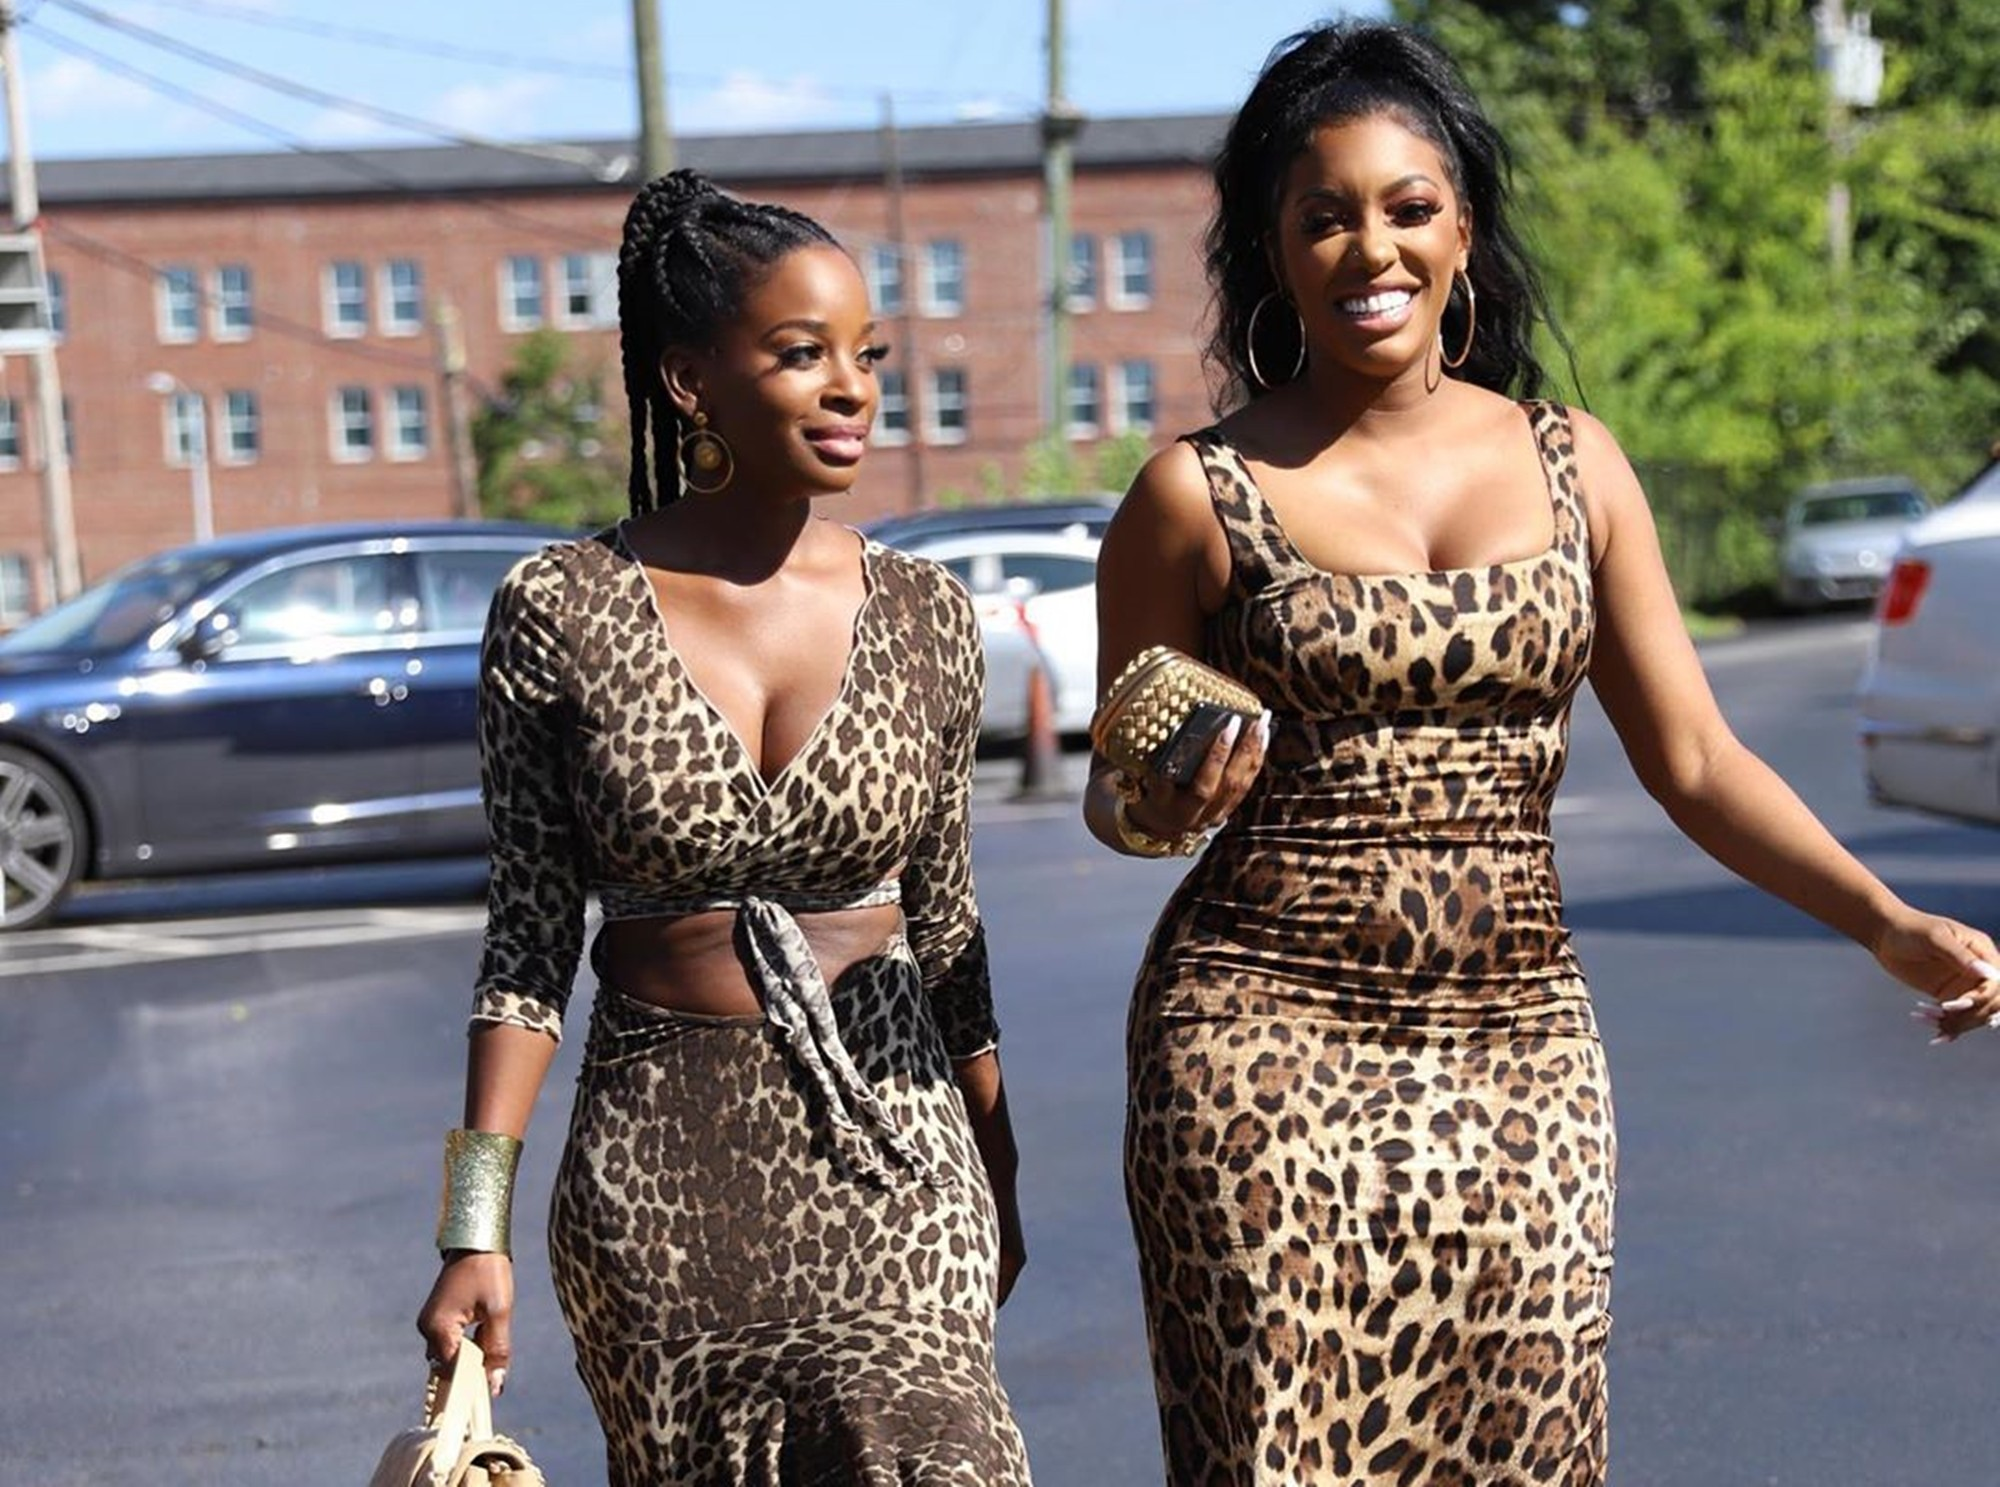 Porsha Williams Poses With Her Sister, Lauren Williams, Shamea Morton And Their Babies And Fans Are In Awe